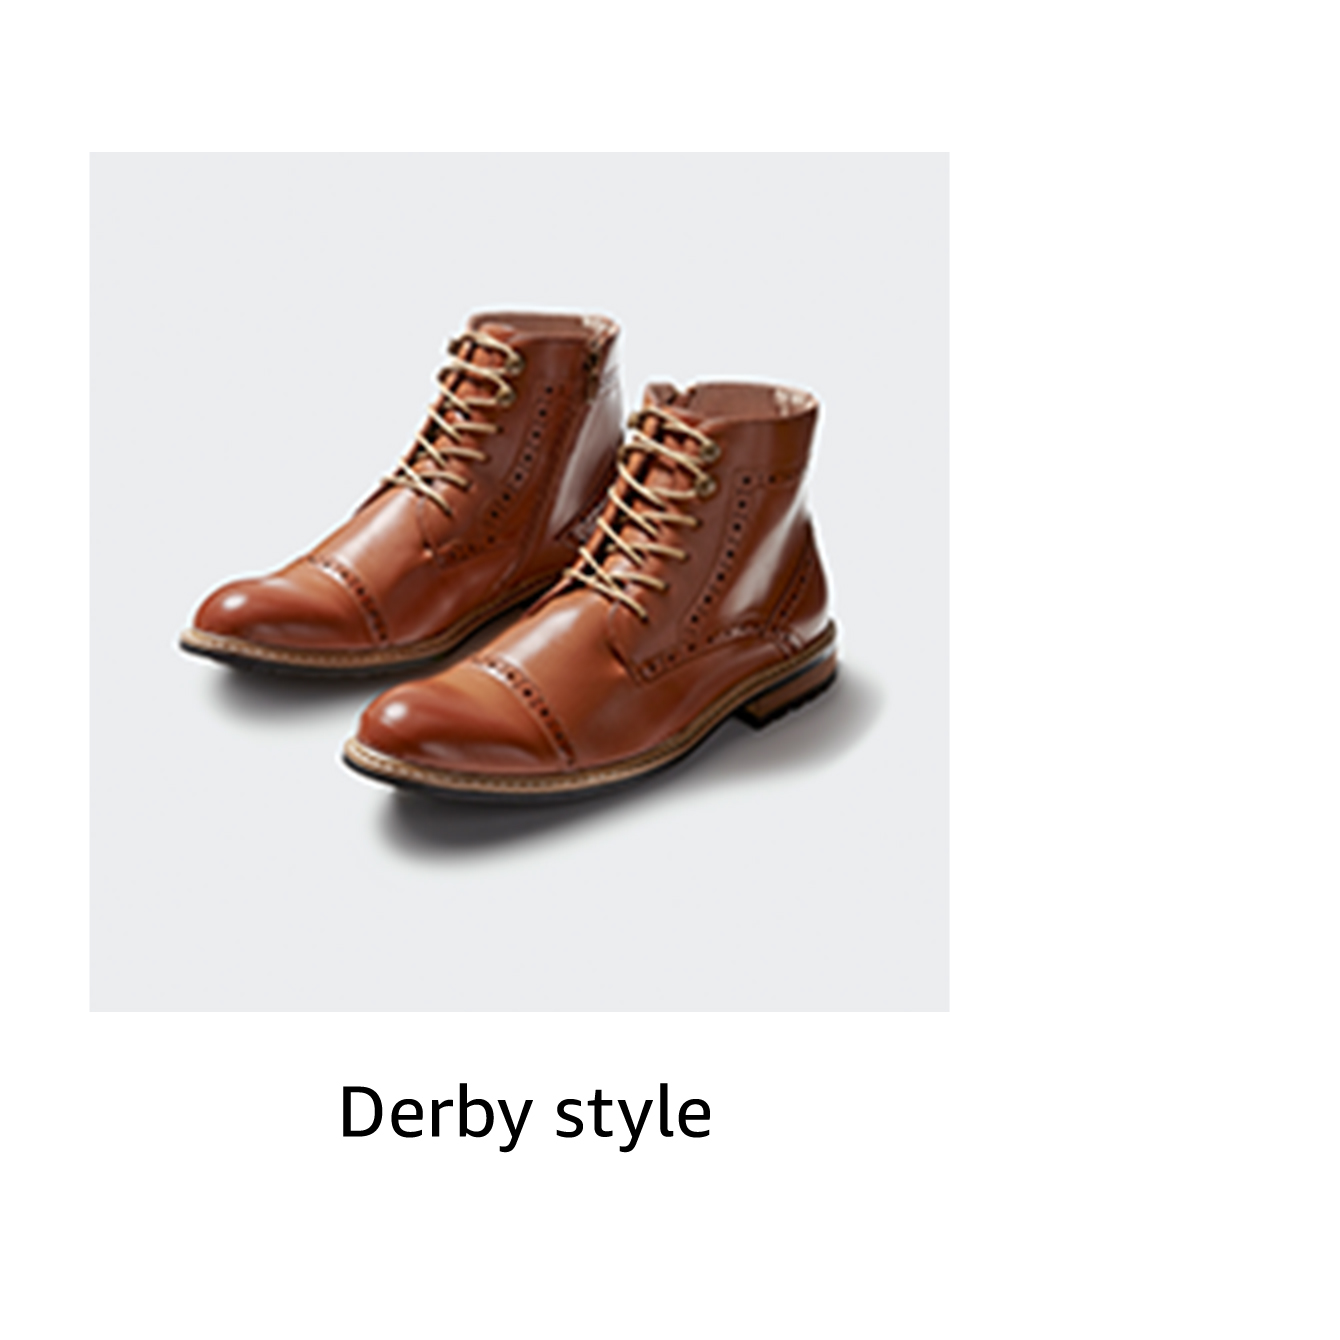 Derby style